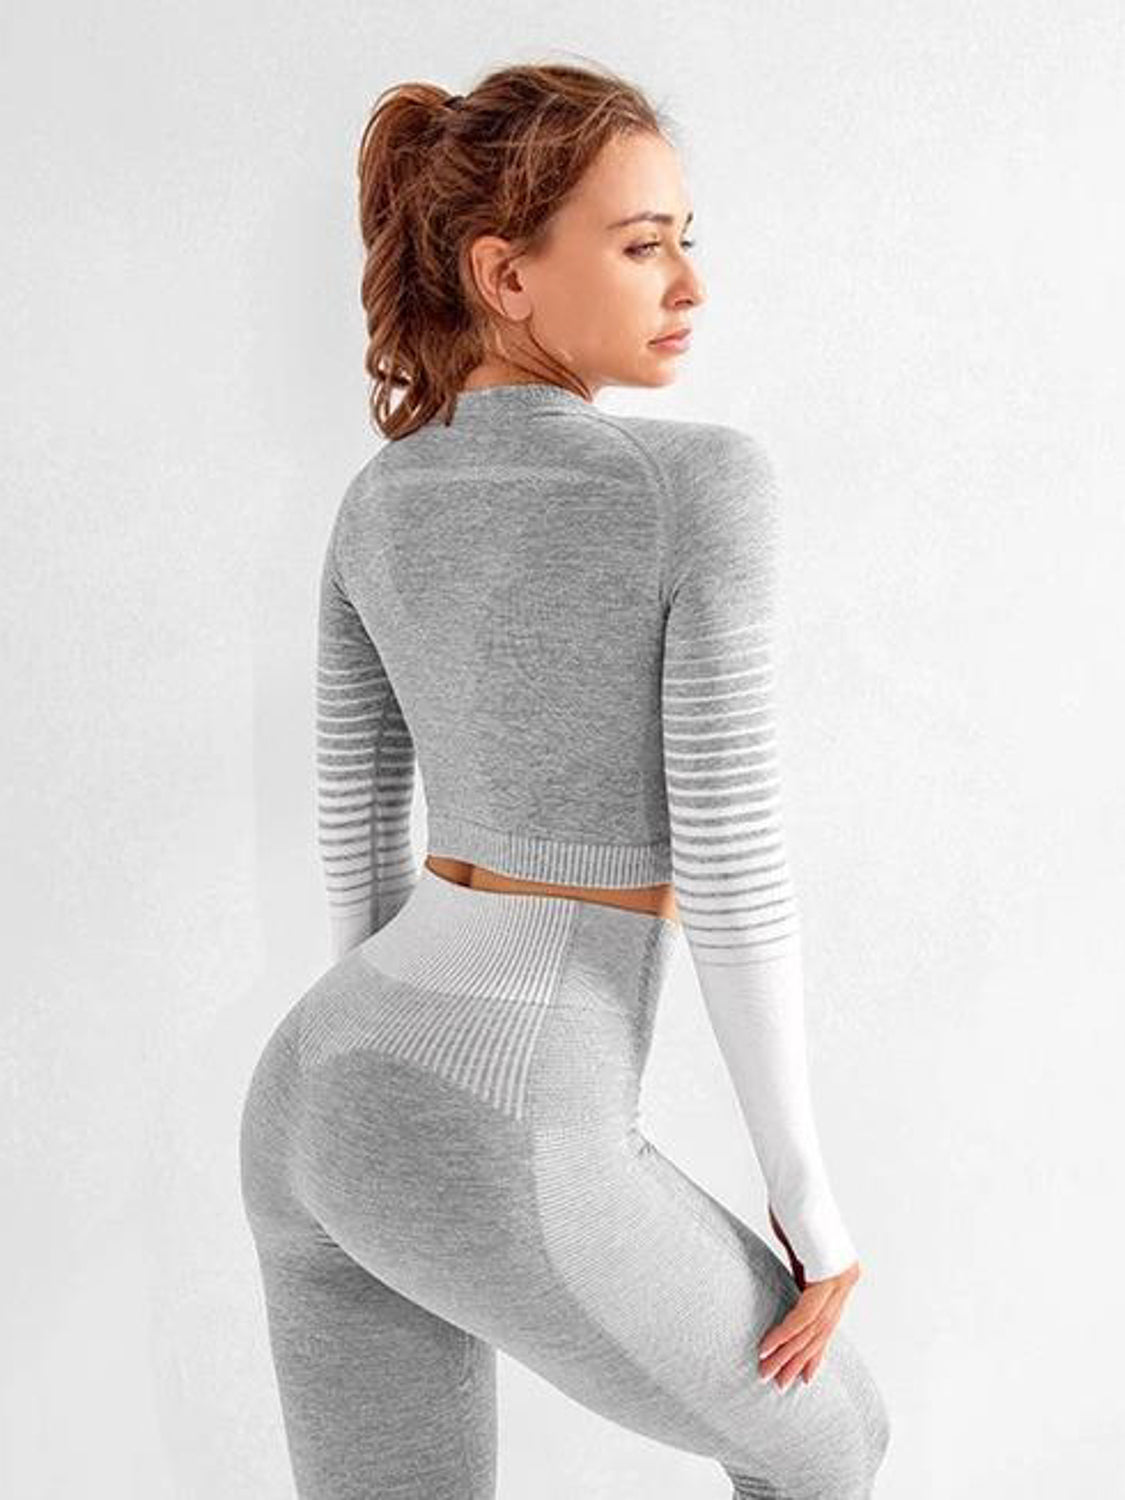 MOVI Rise Sleeved Crop - Grey/White